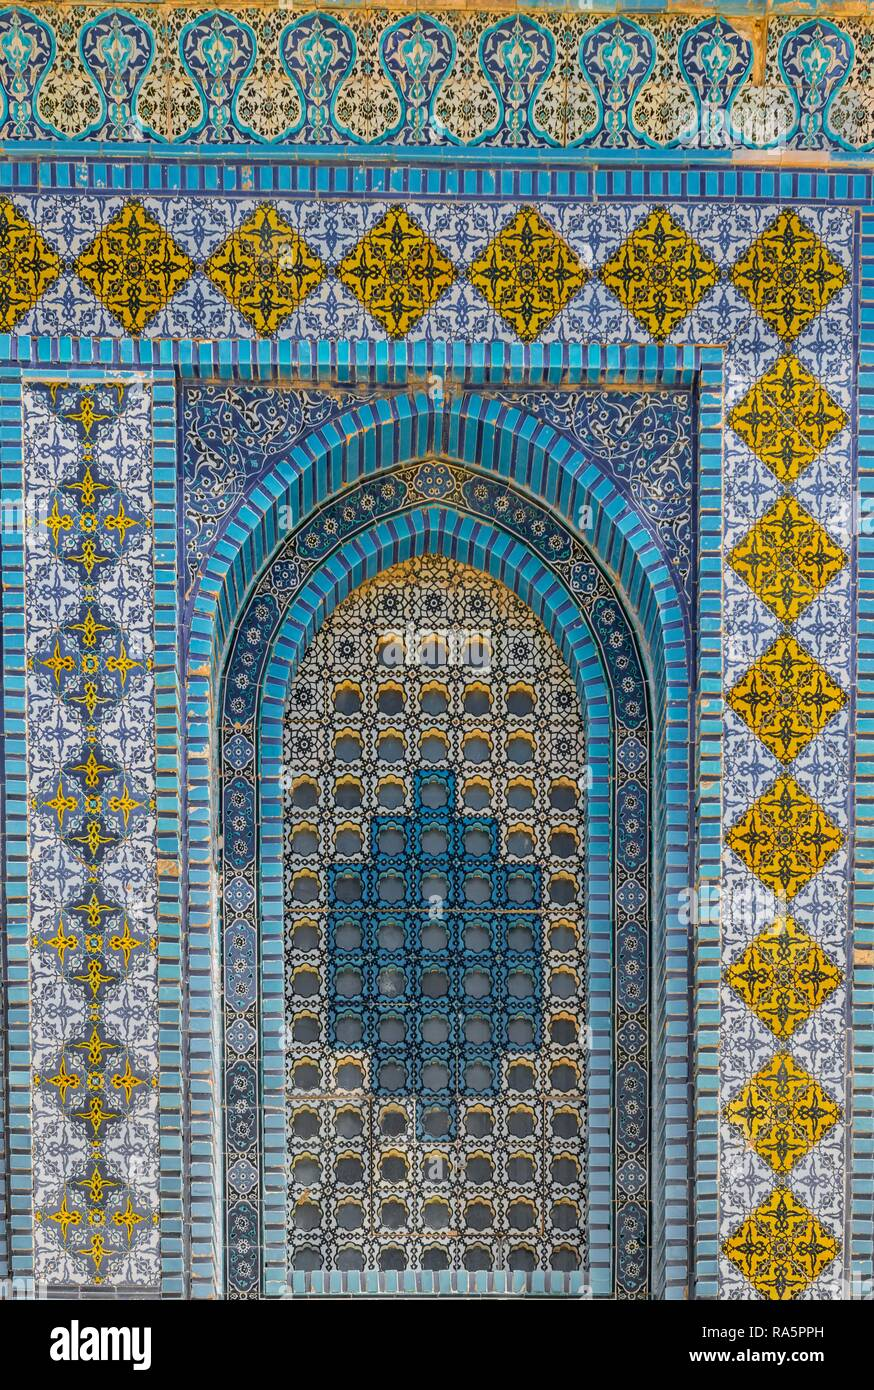 Mosaic decorated facade, Dome of the Rock, also Qubbat As-sachra, Kipat Hasela, Temple Mount, Old Town, Jerusalem, Israel Stock Photo